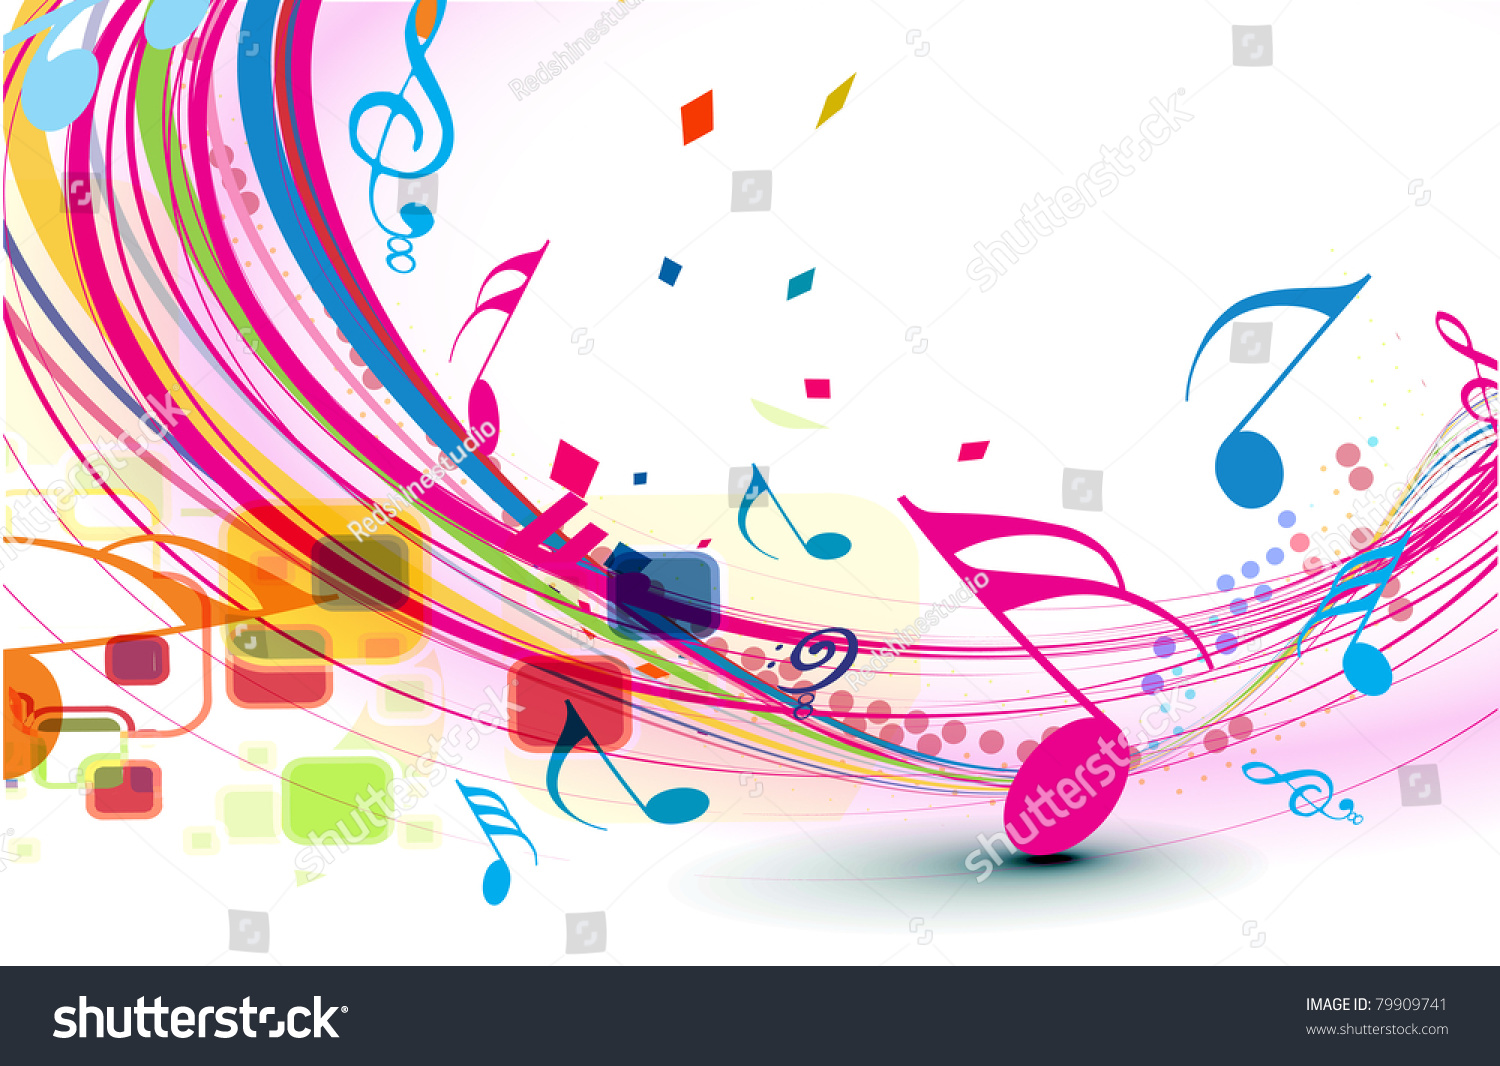 Rainbow Music Background Meaning Colorful Lines And Melody: Abstract Music Notes Design Music Background Stock Vector